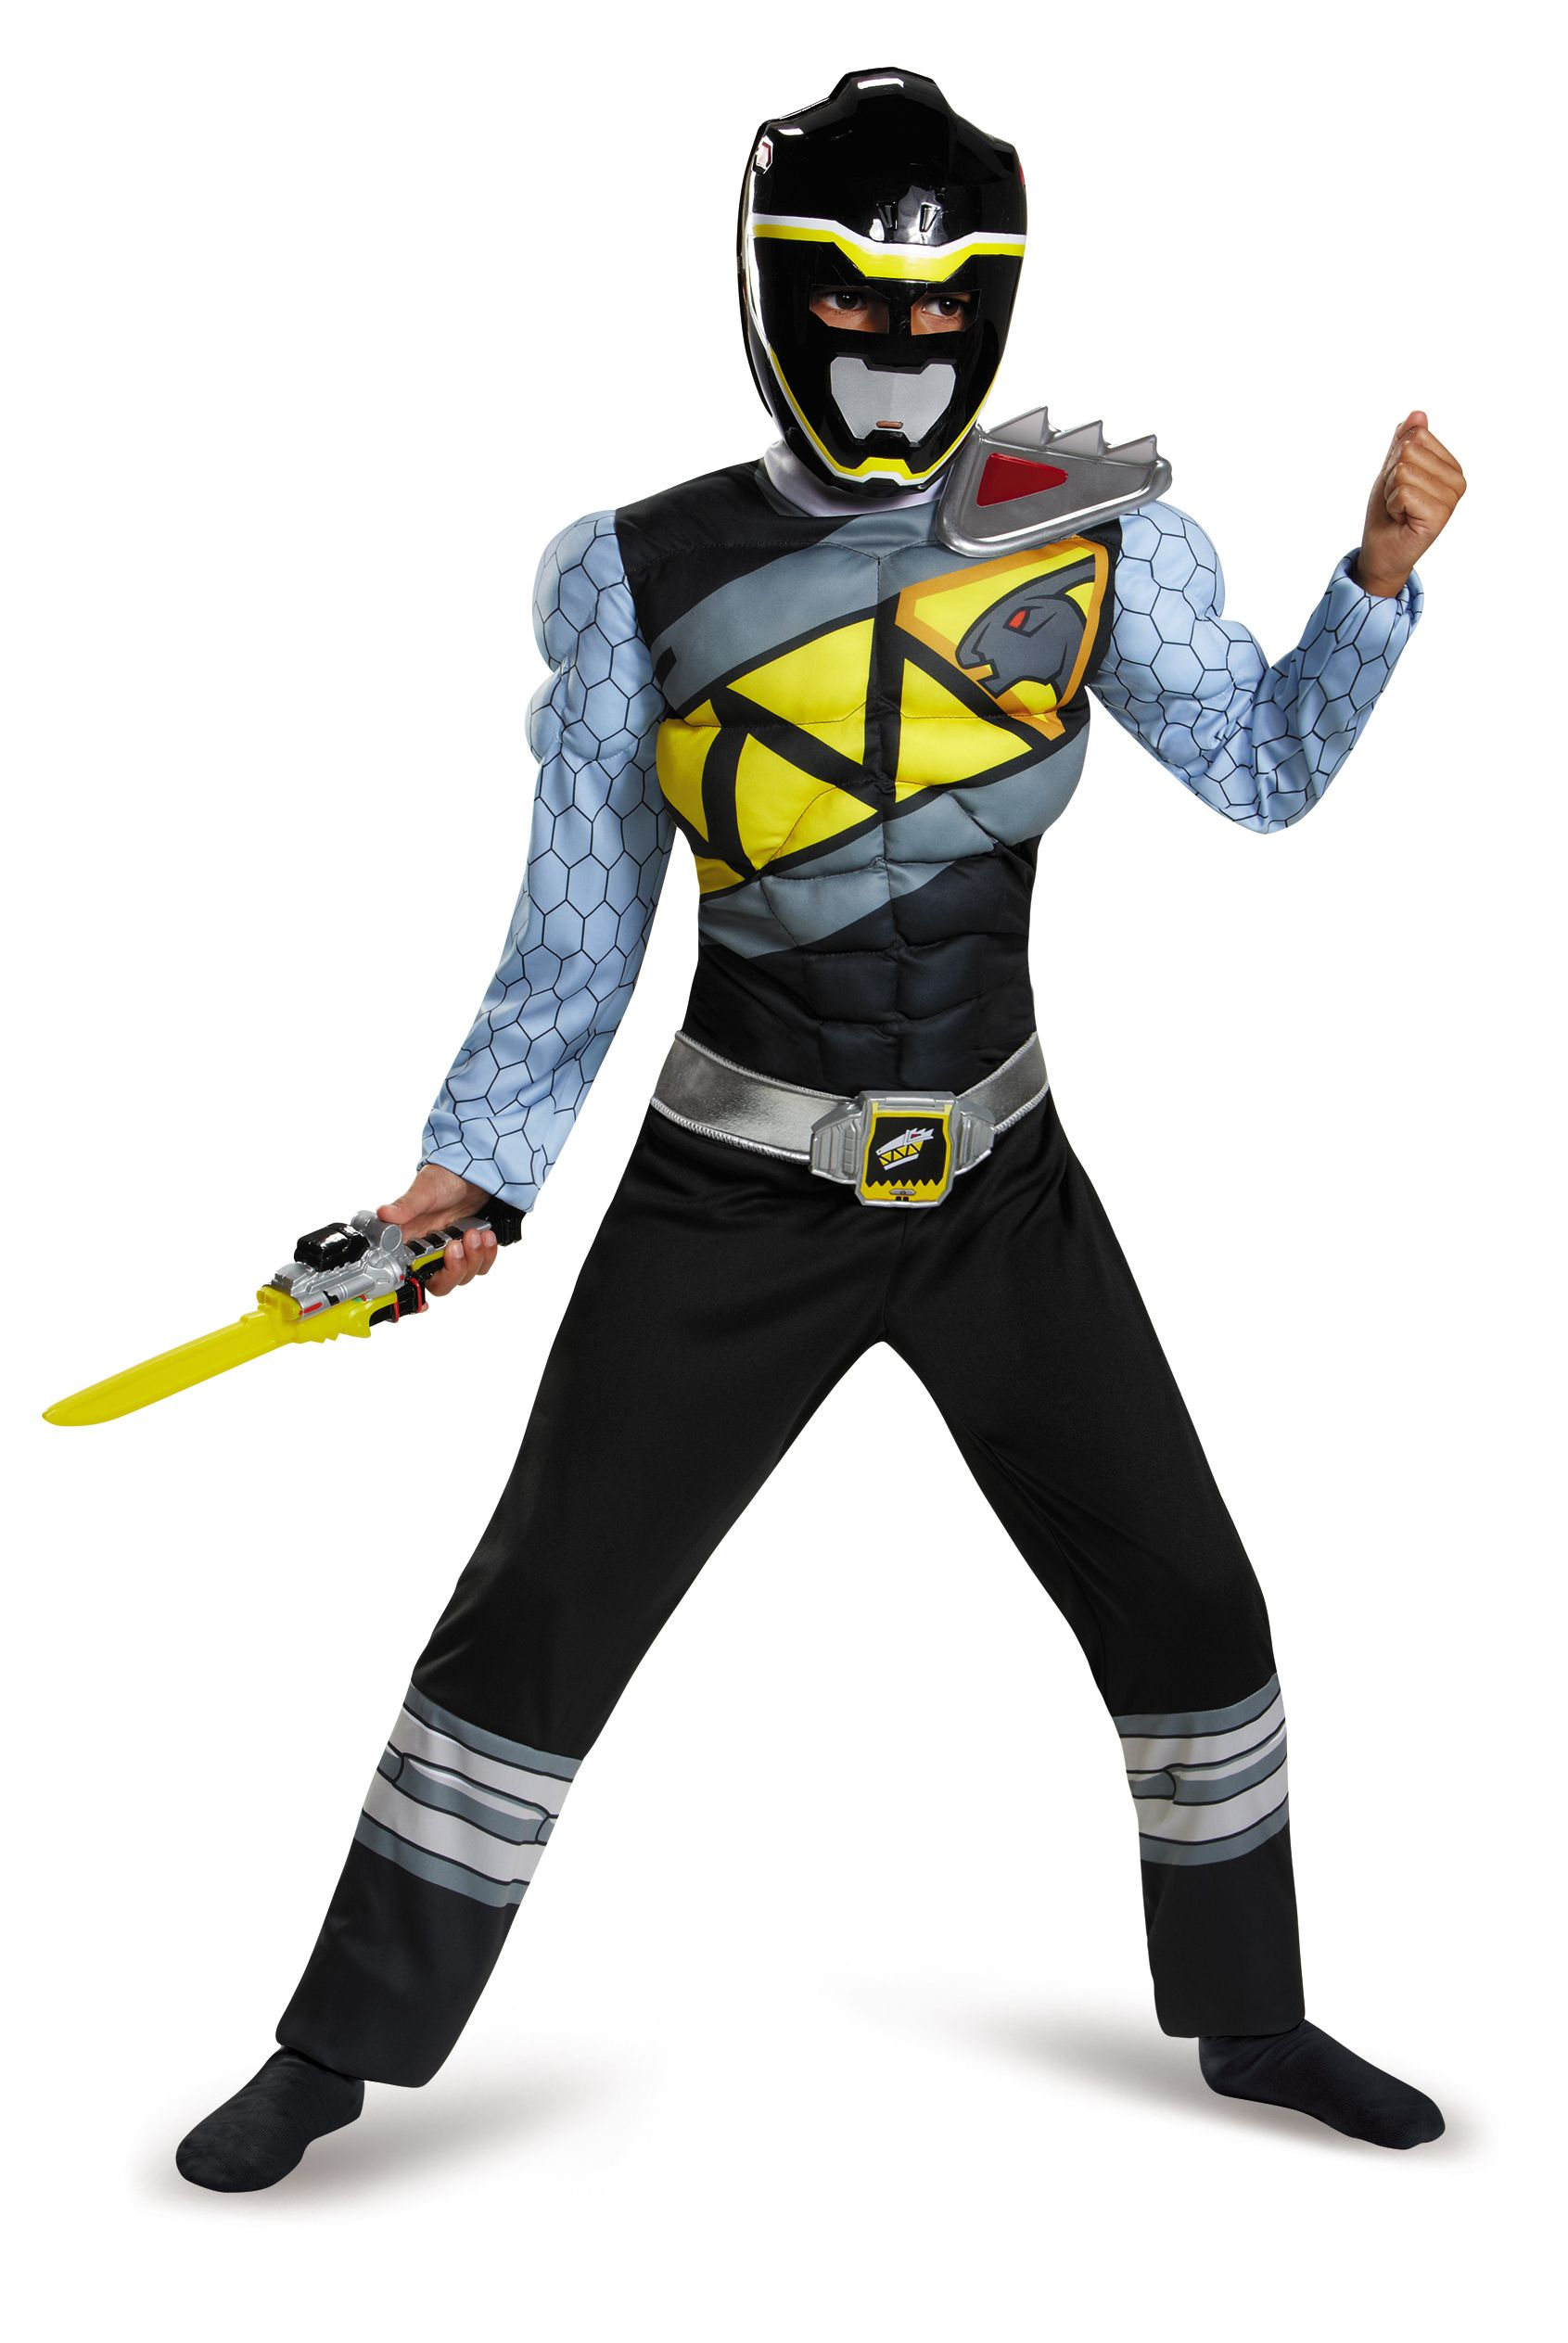 Black Ranger Dino Charge Boys Classic Muscle Costume Product includes: Jumpsuit with muscle torso and arms, attached belt with detachable belt buckle, detachable shoulder piece, and character mask. #PowerRangers #DinoCharge